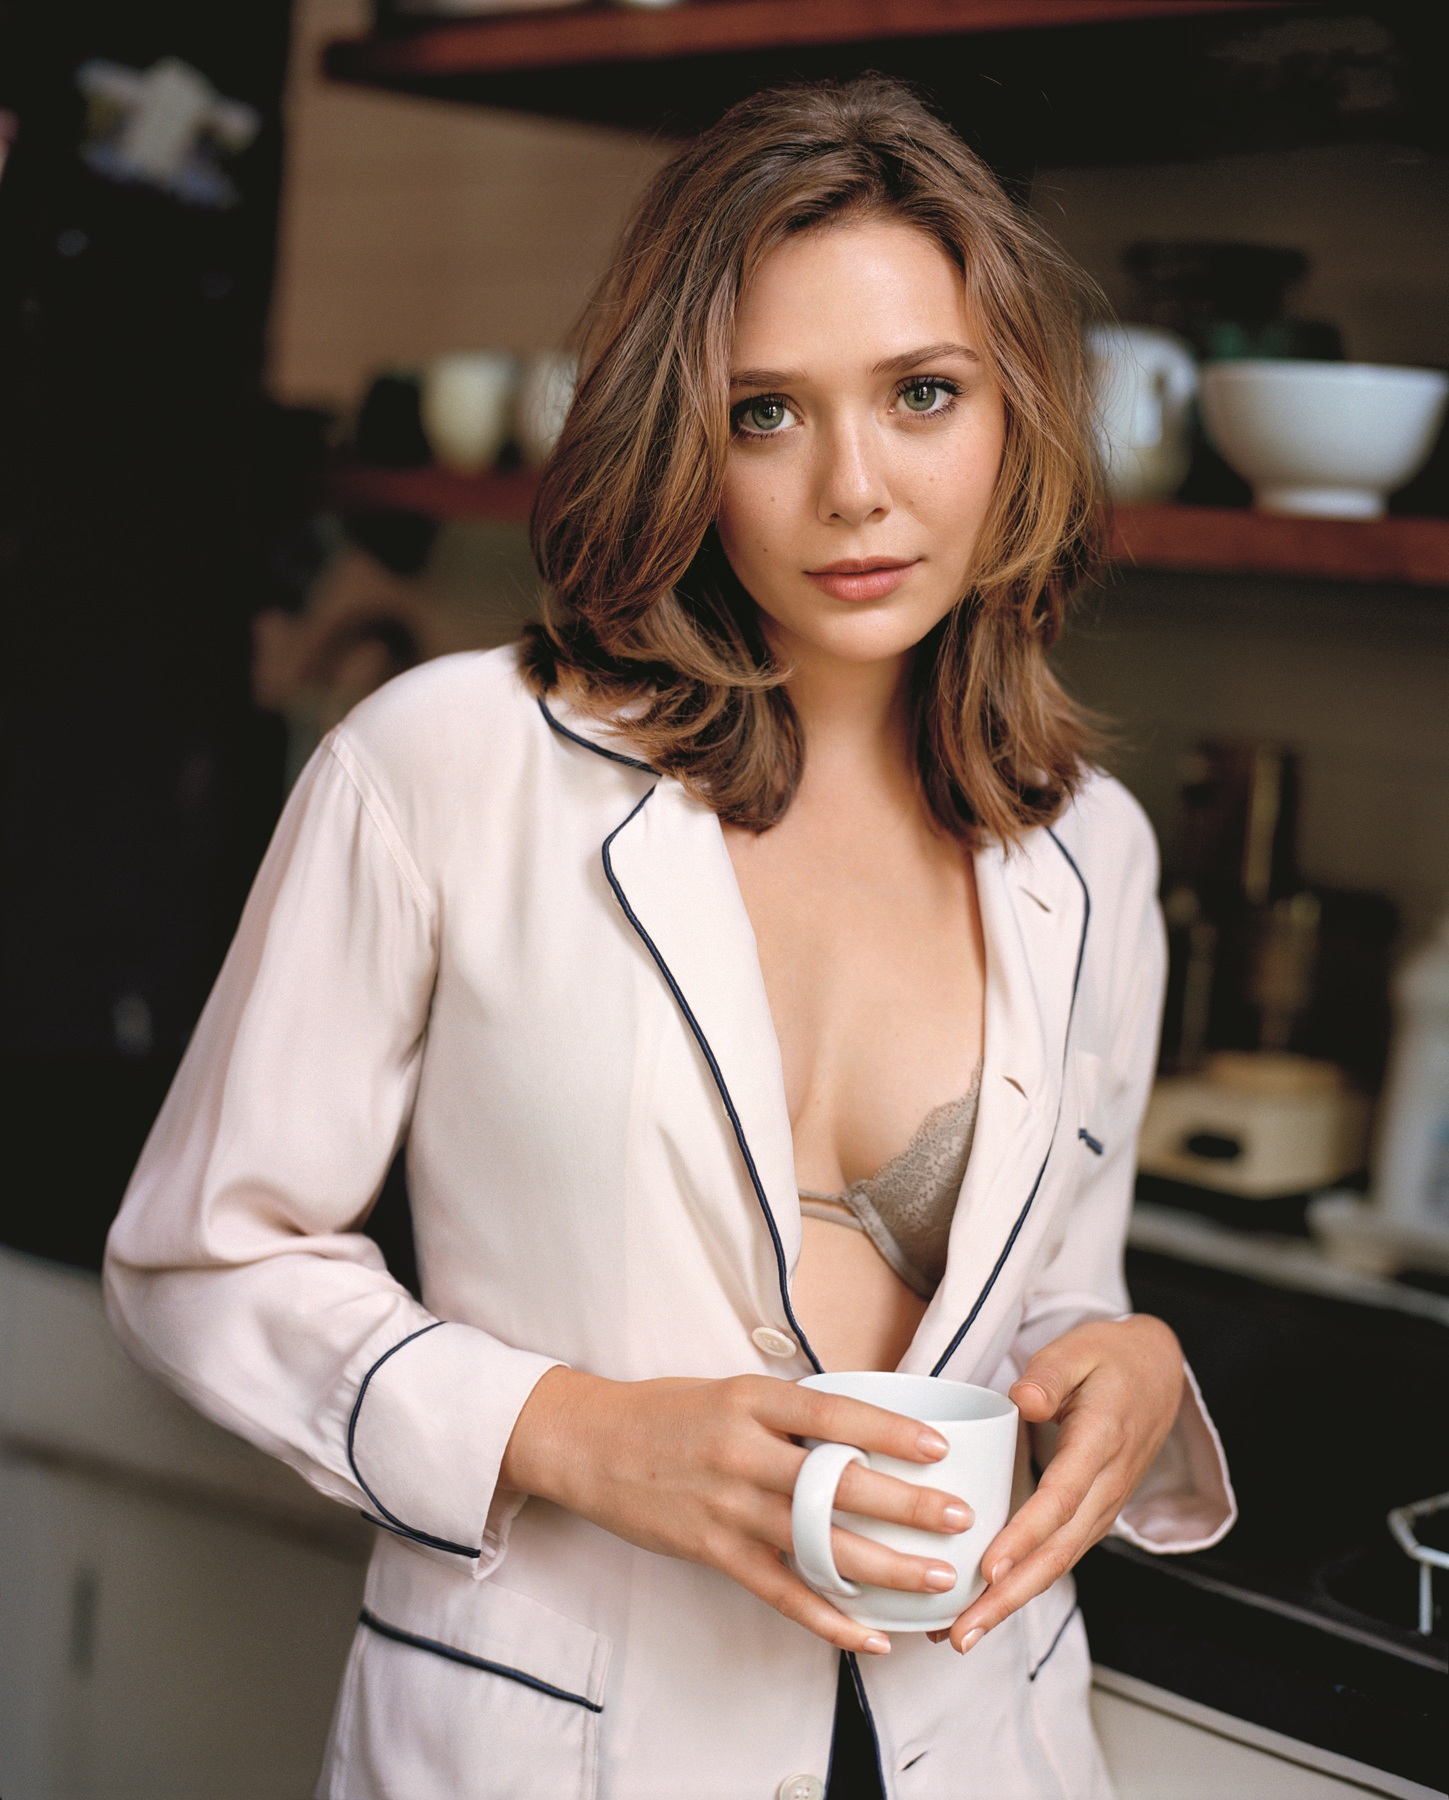 Elizabeth Olsen Hot in Bra